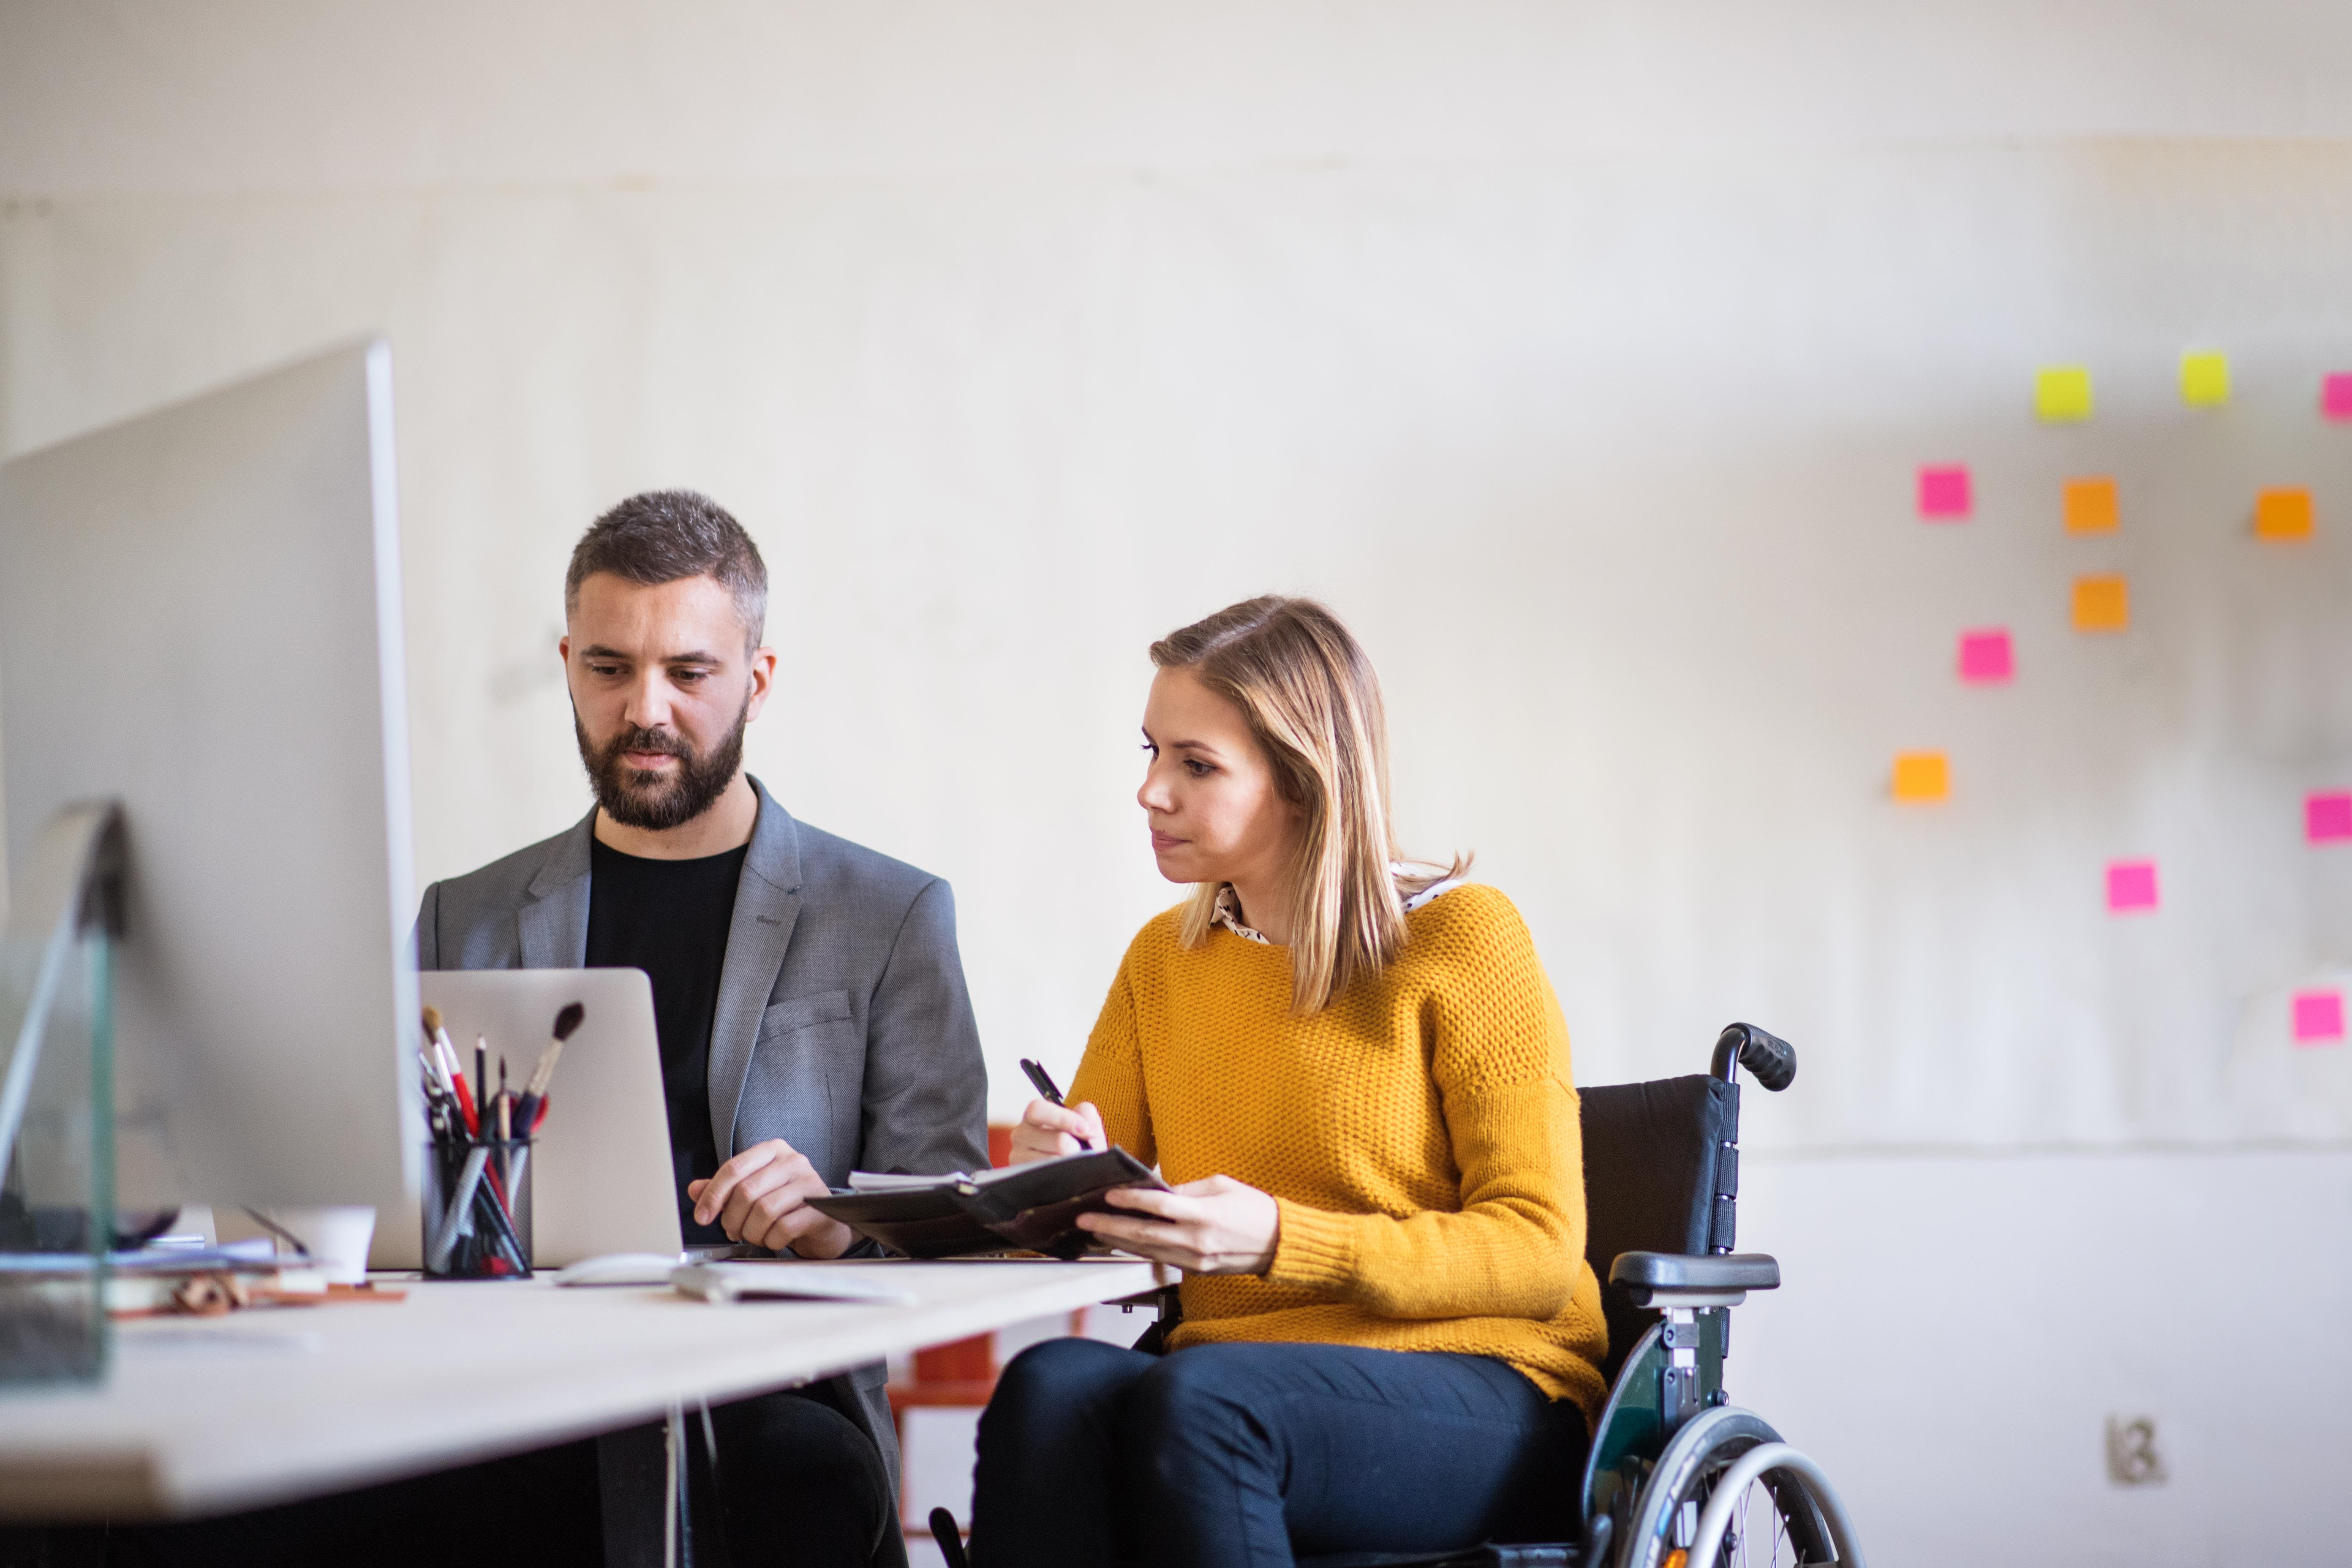 https://www.zatrudnijwozkersa.pl/wp-content/uploads/2019/04/two-business-people-with-wheelchair-in-the-office-PMJT9V570.jpg